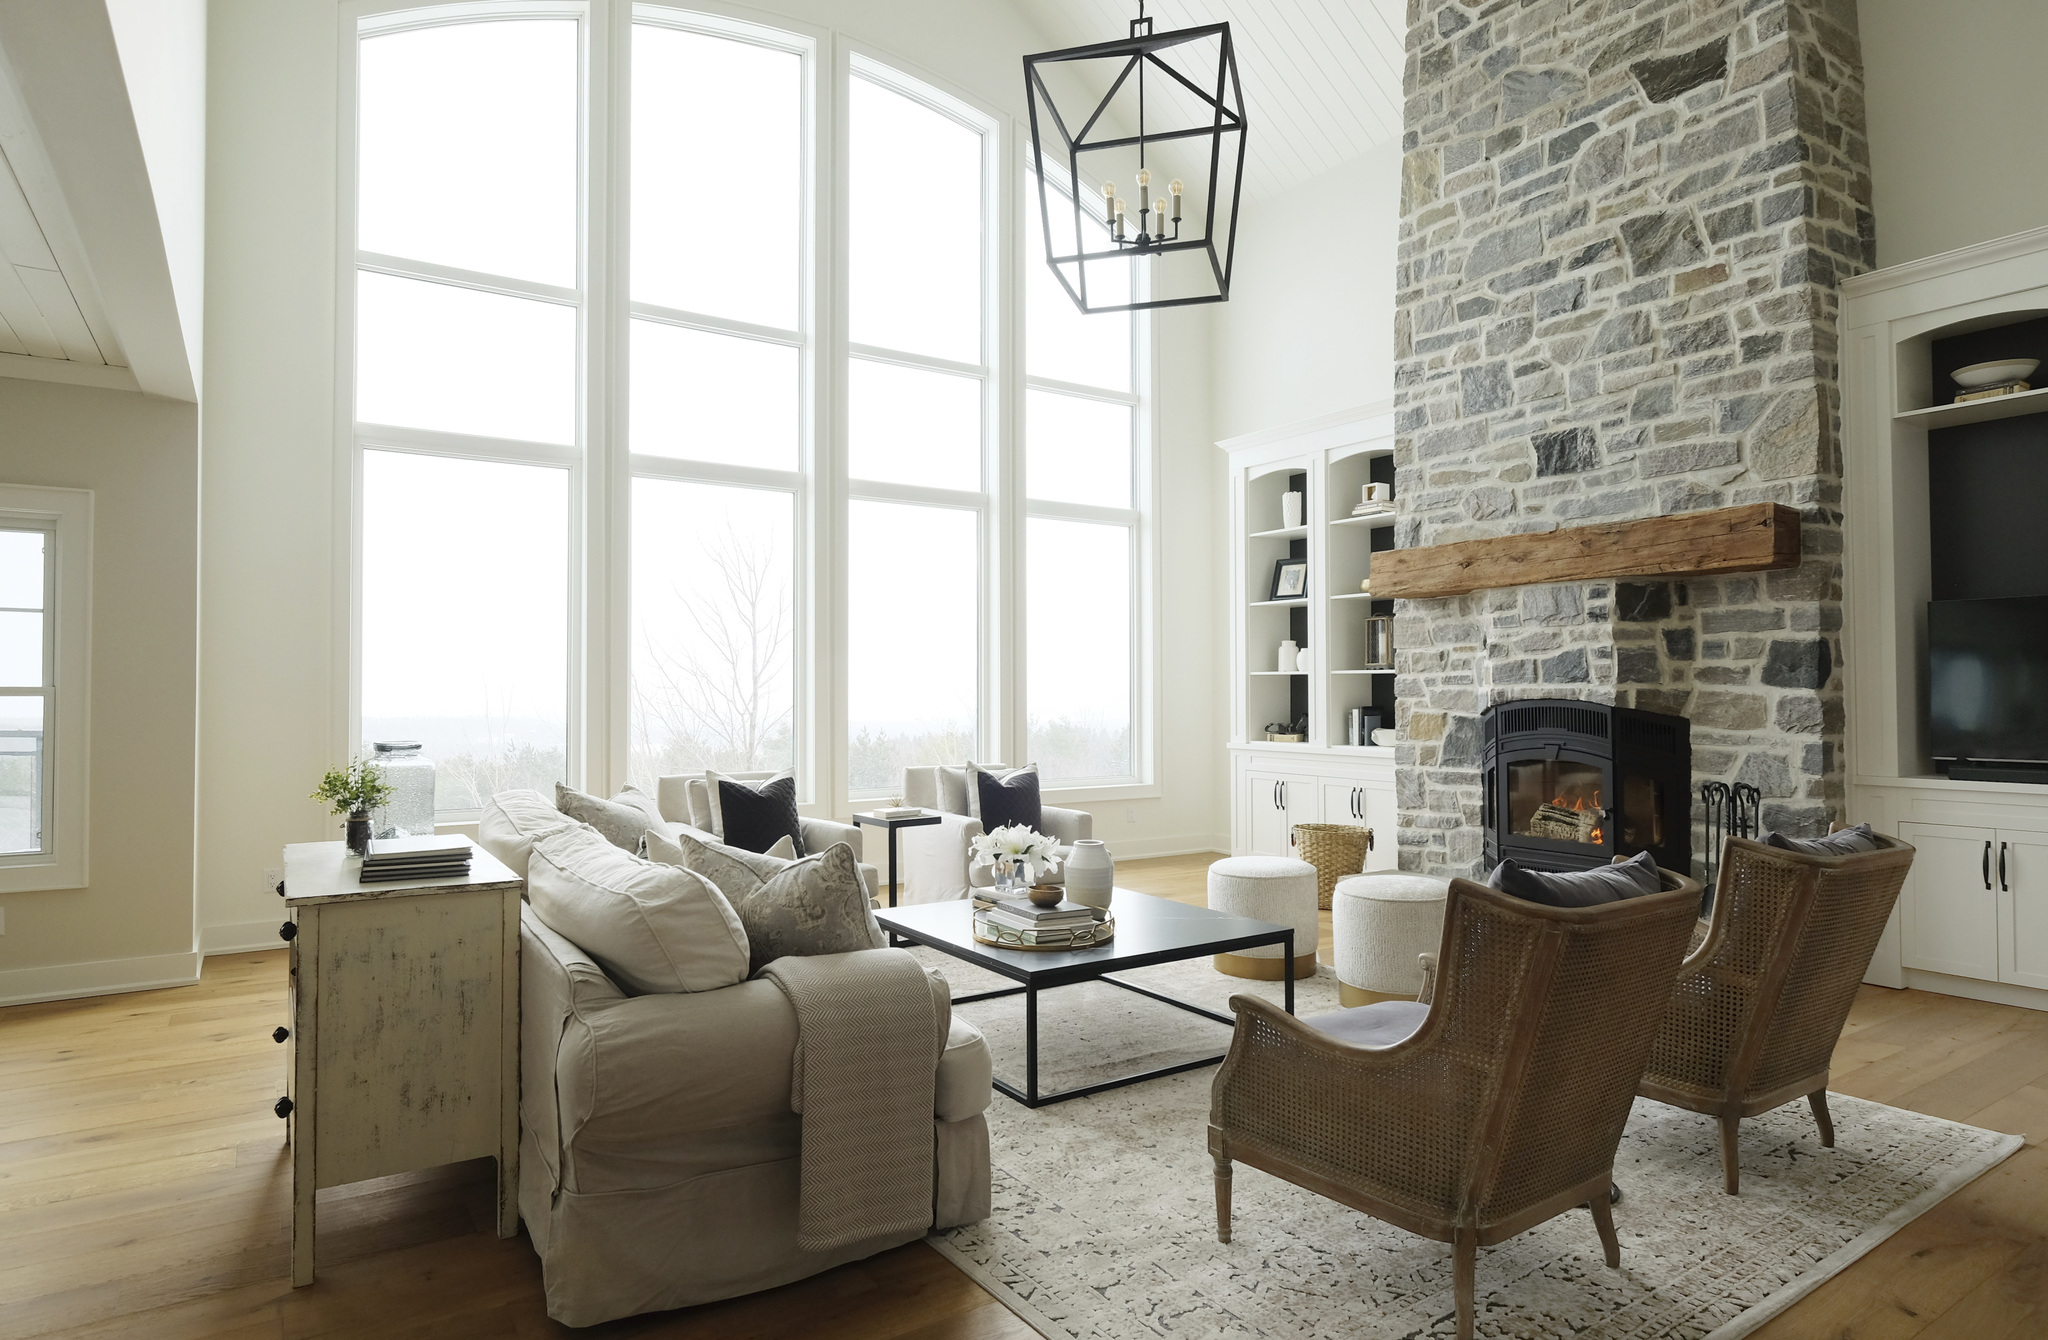 custom modern living room with sofa and seating around stone fireplace